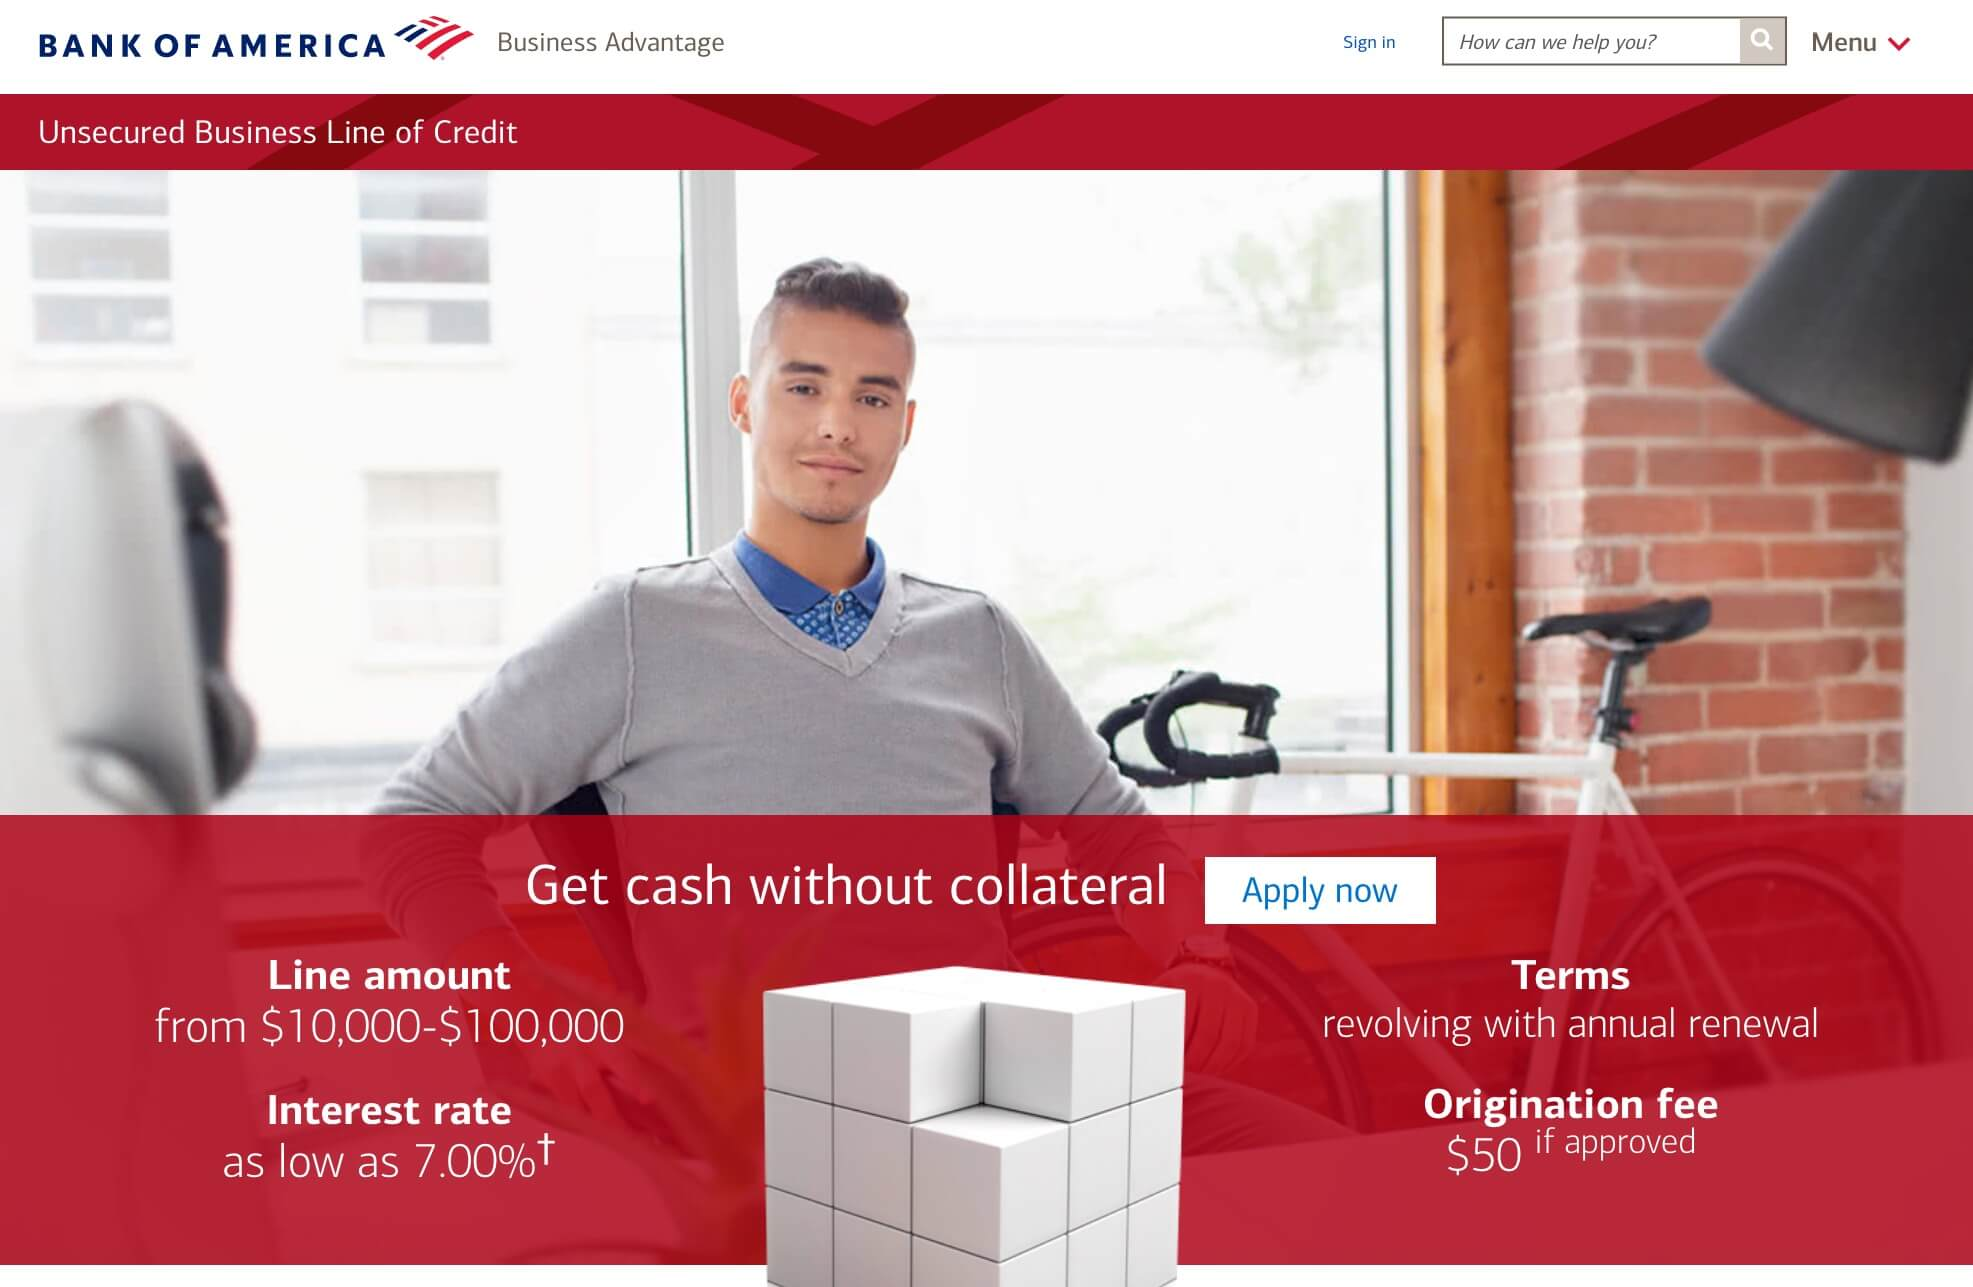 Bank of America business line of credit